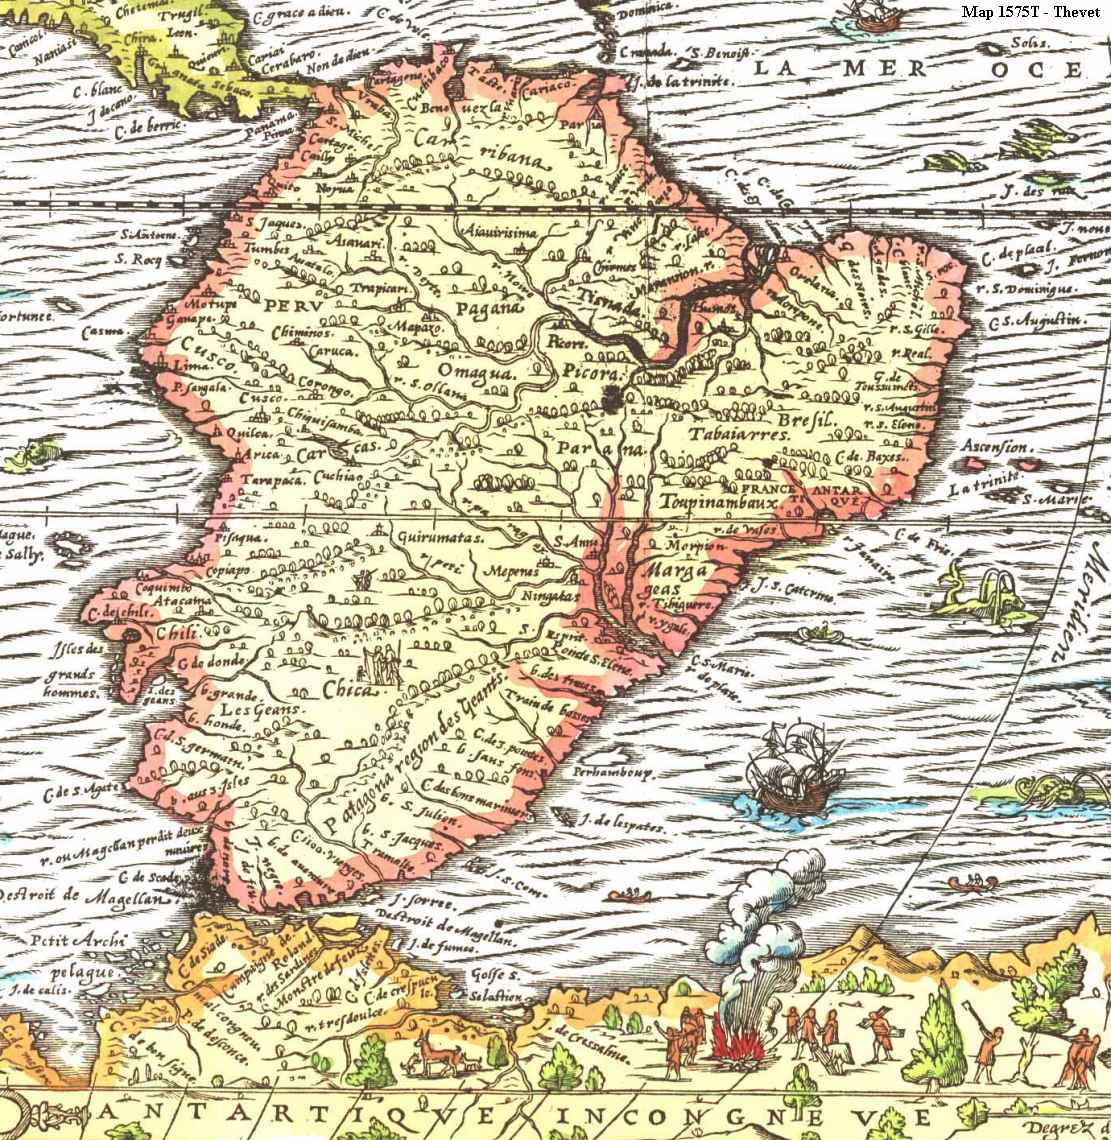 Map of South America from 1575